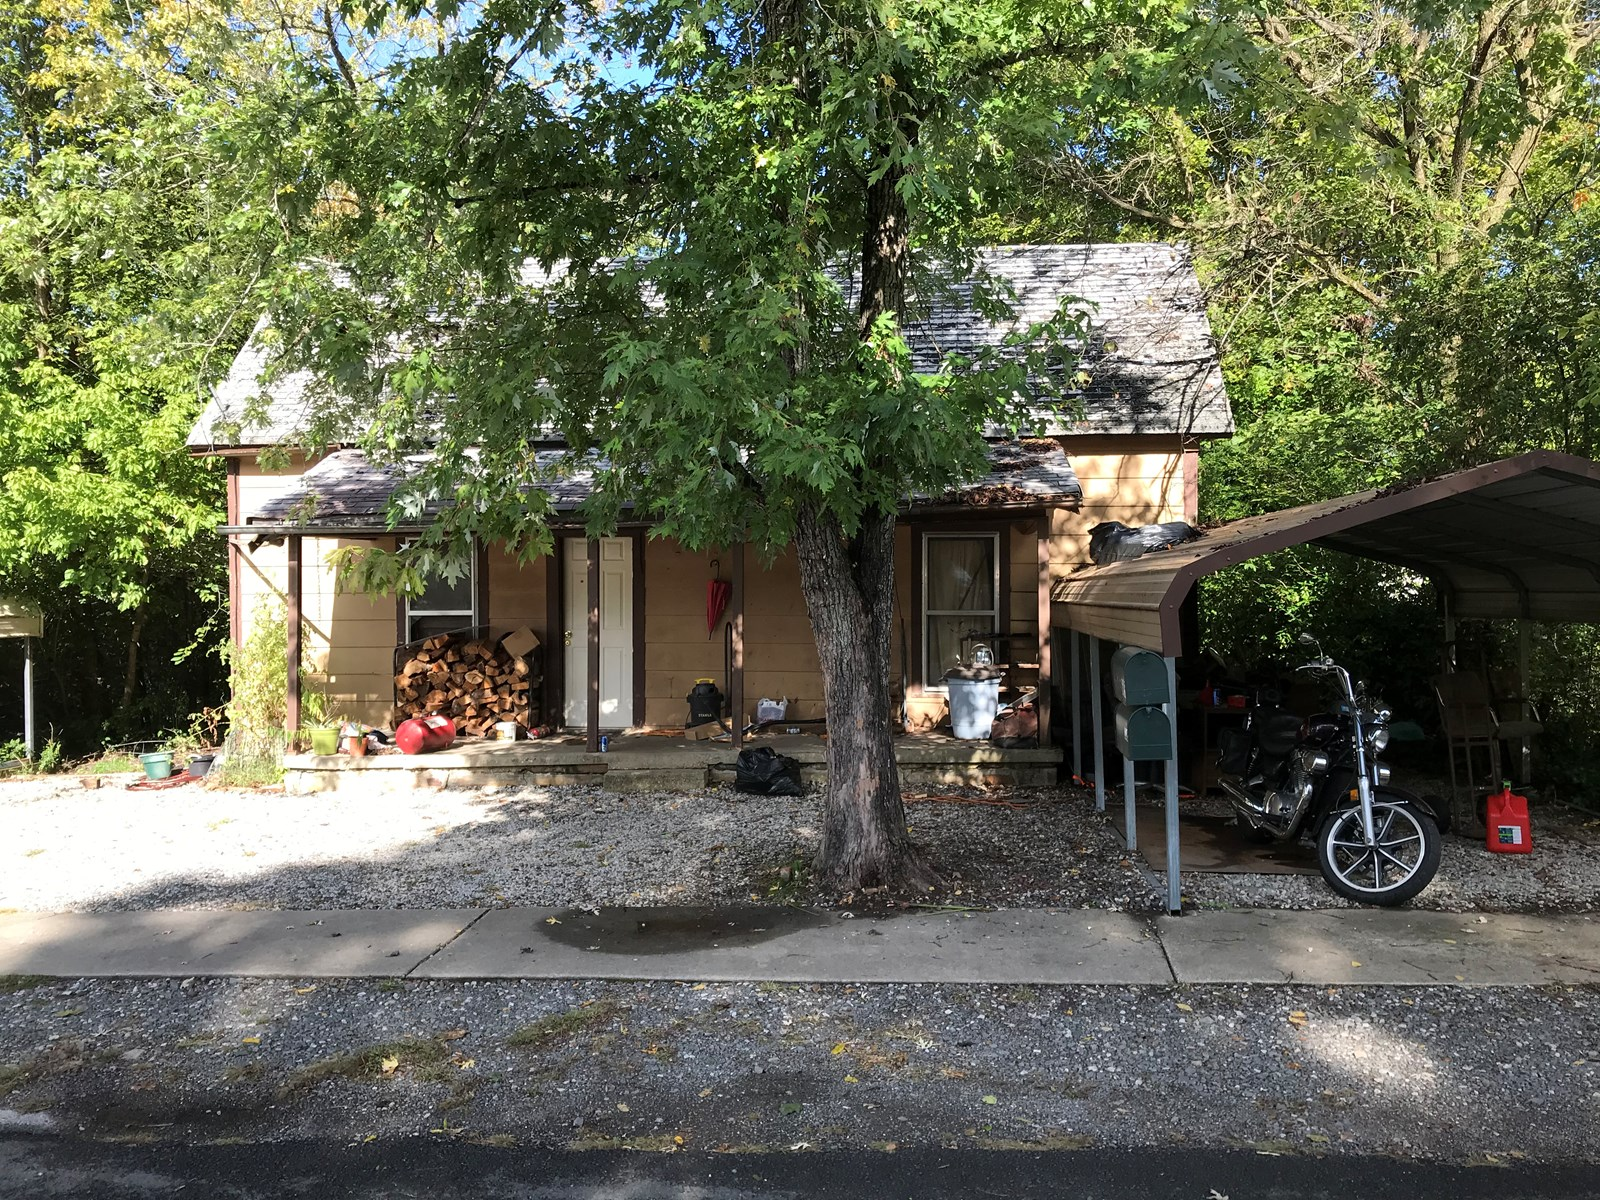 Lot w/Old House For Sale in Historic Leslie, Arkansas